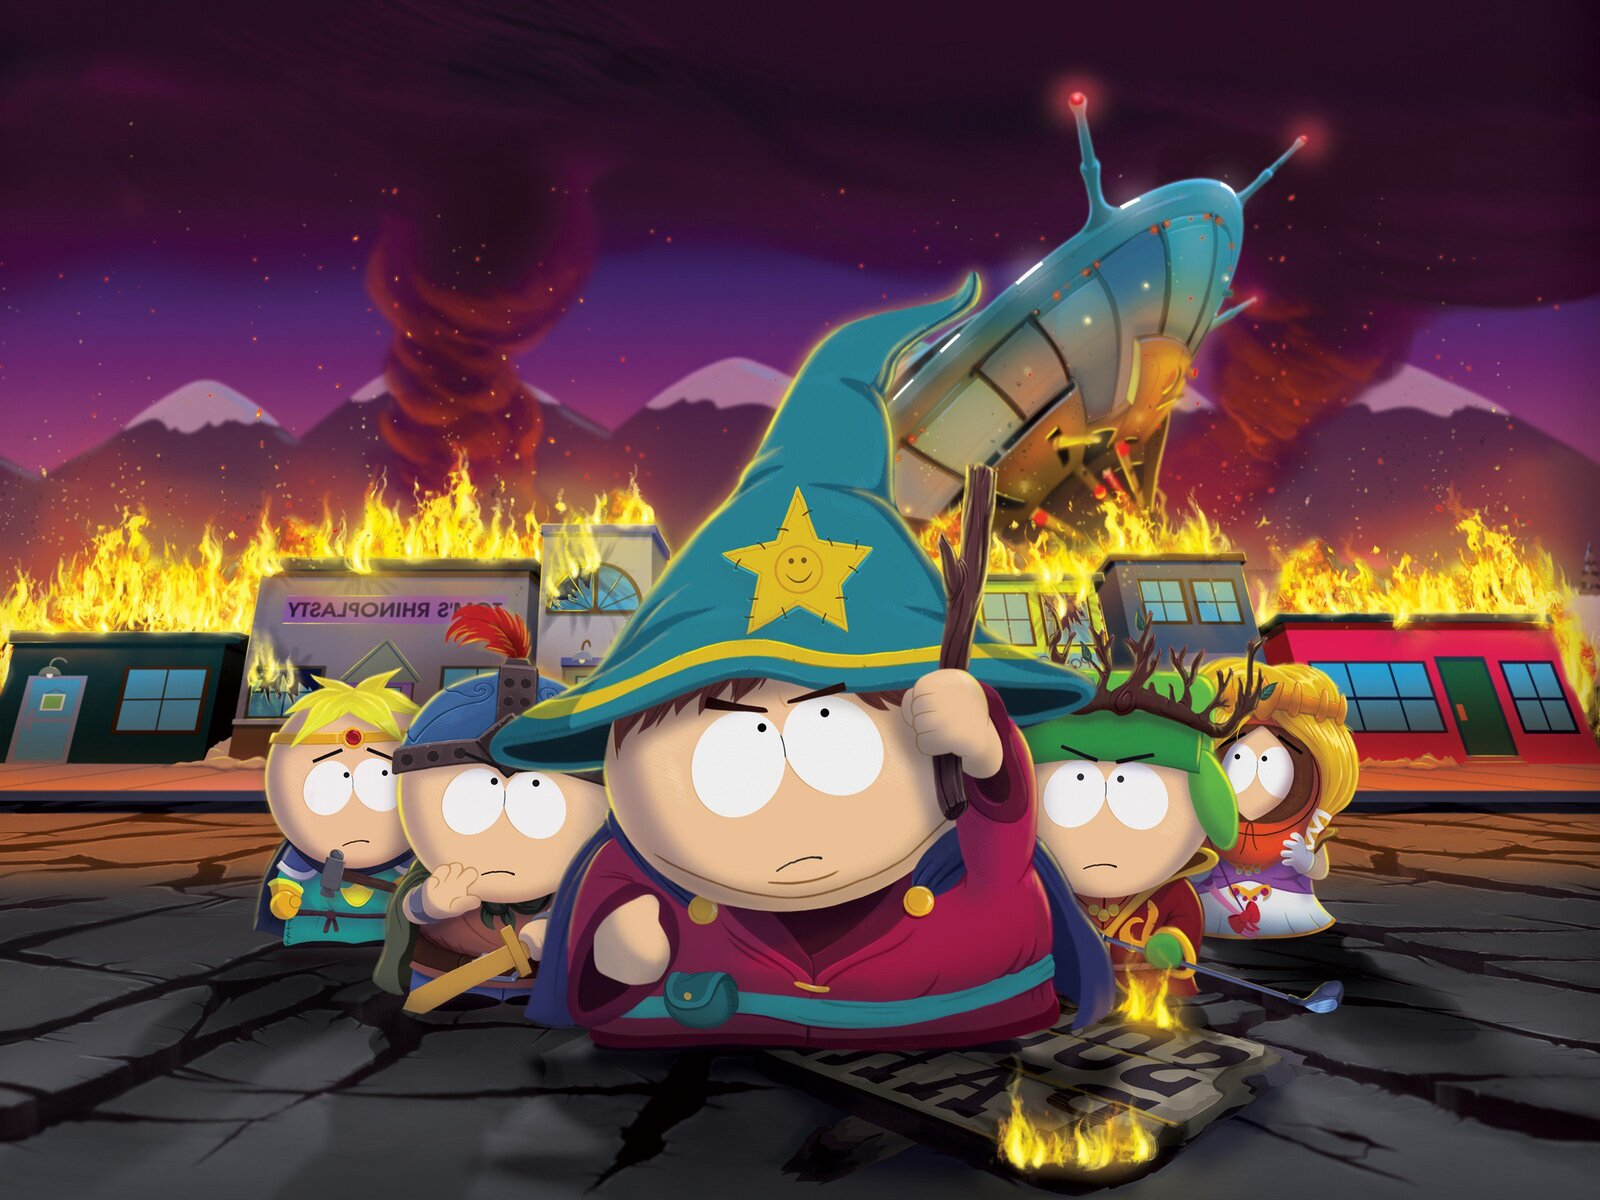 1600x1200 South Park The Stick Of Truth 1600x1200 Resolution Hd 4k